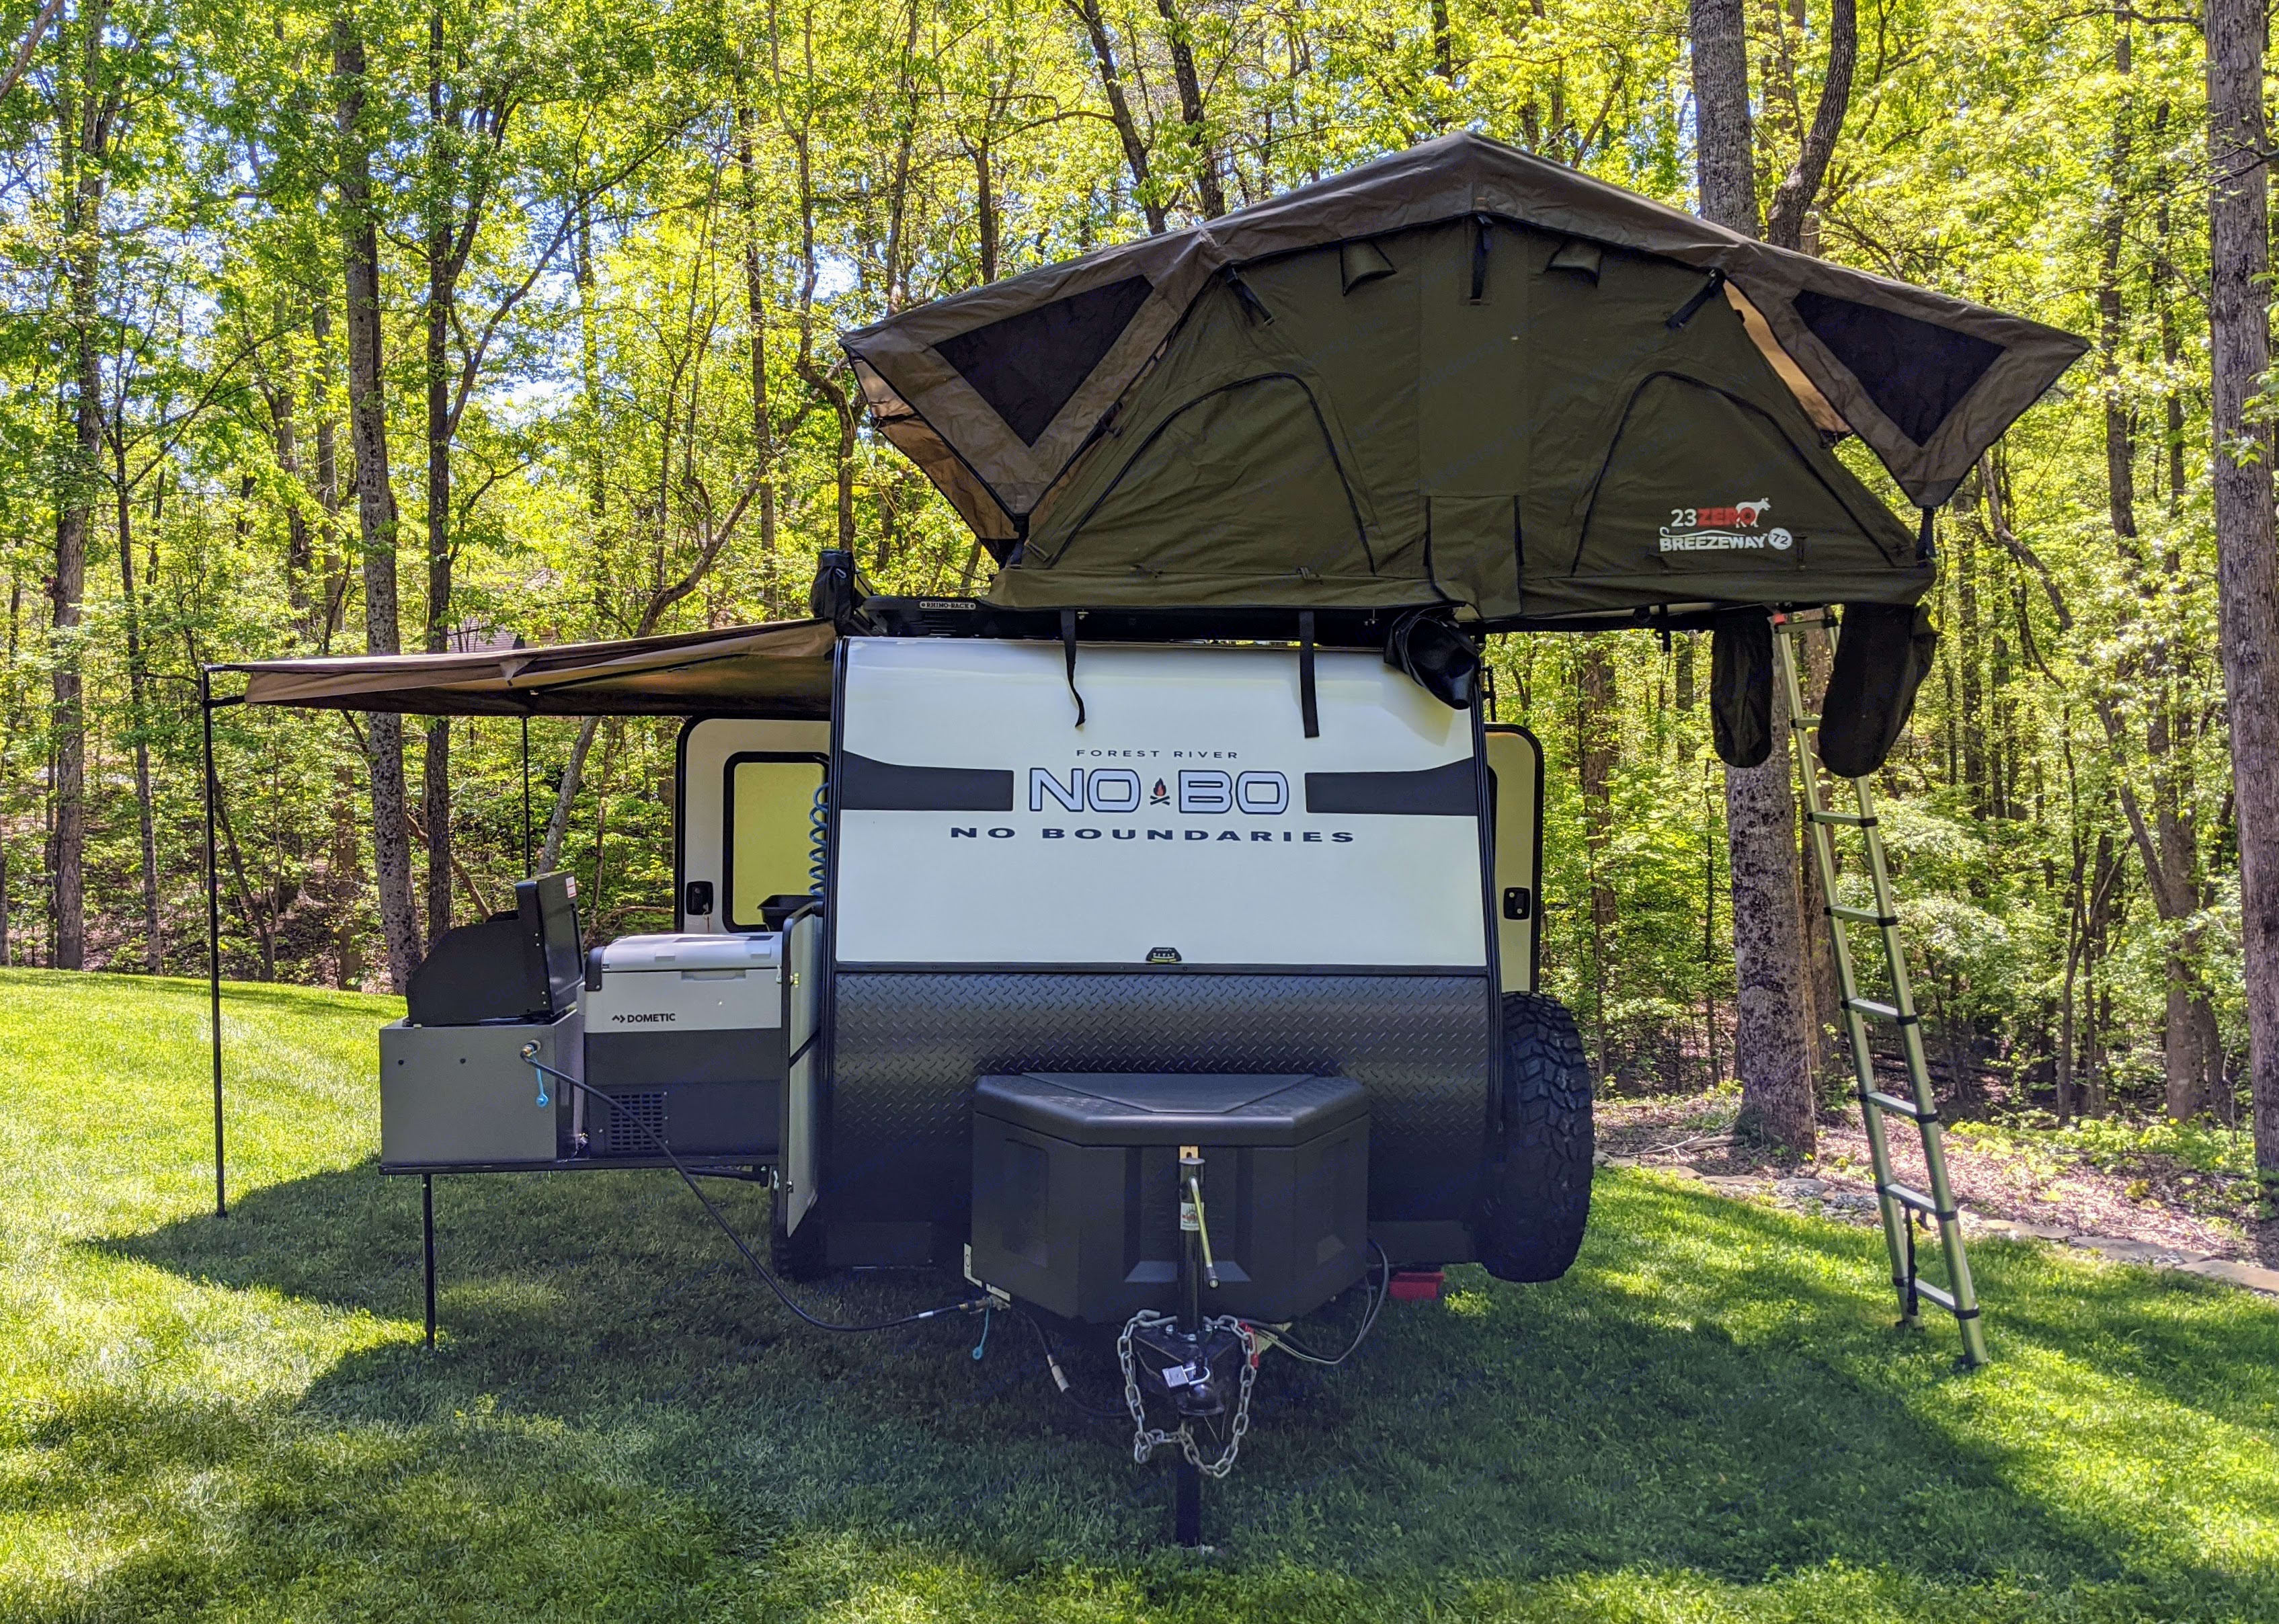 Available 23 Zero roof top tent (Add-on). Forest River No Boundaries 10.6 2020